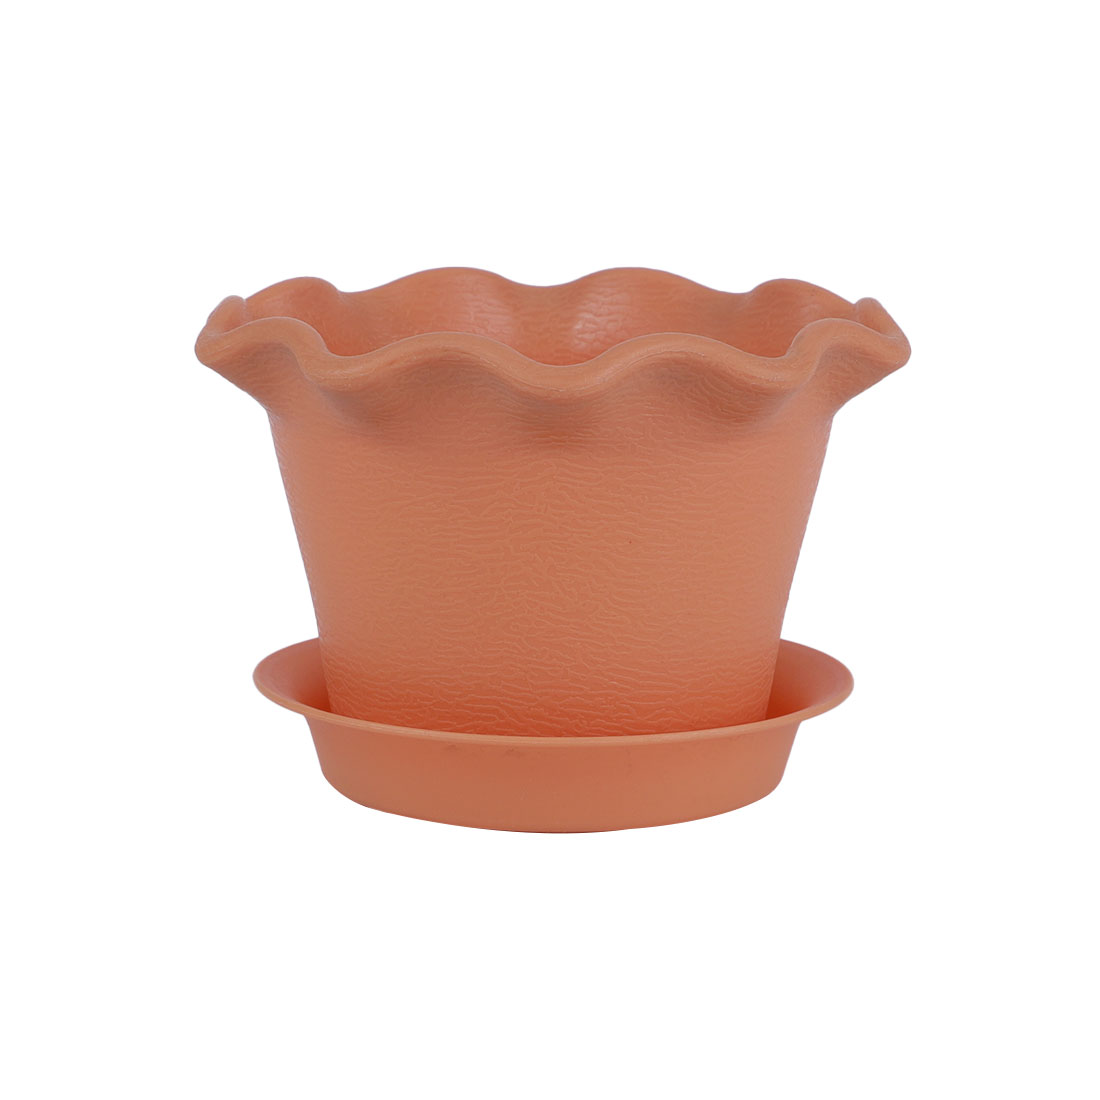 Home Patio Garden Plastic Floral Shaped Cactus Plant Flower Pot Office Decor Camel w Tray